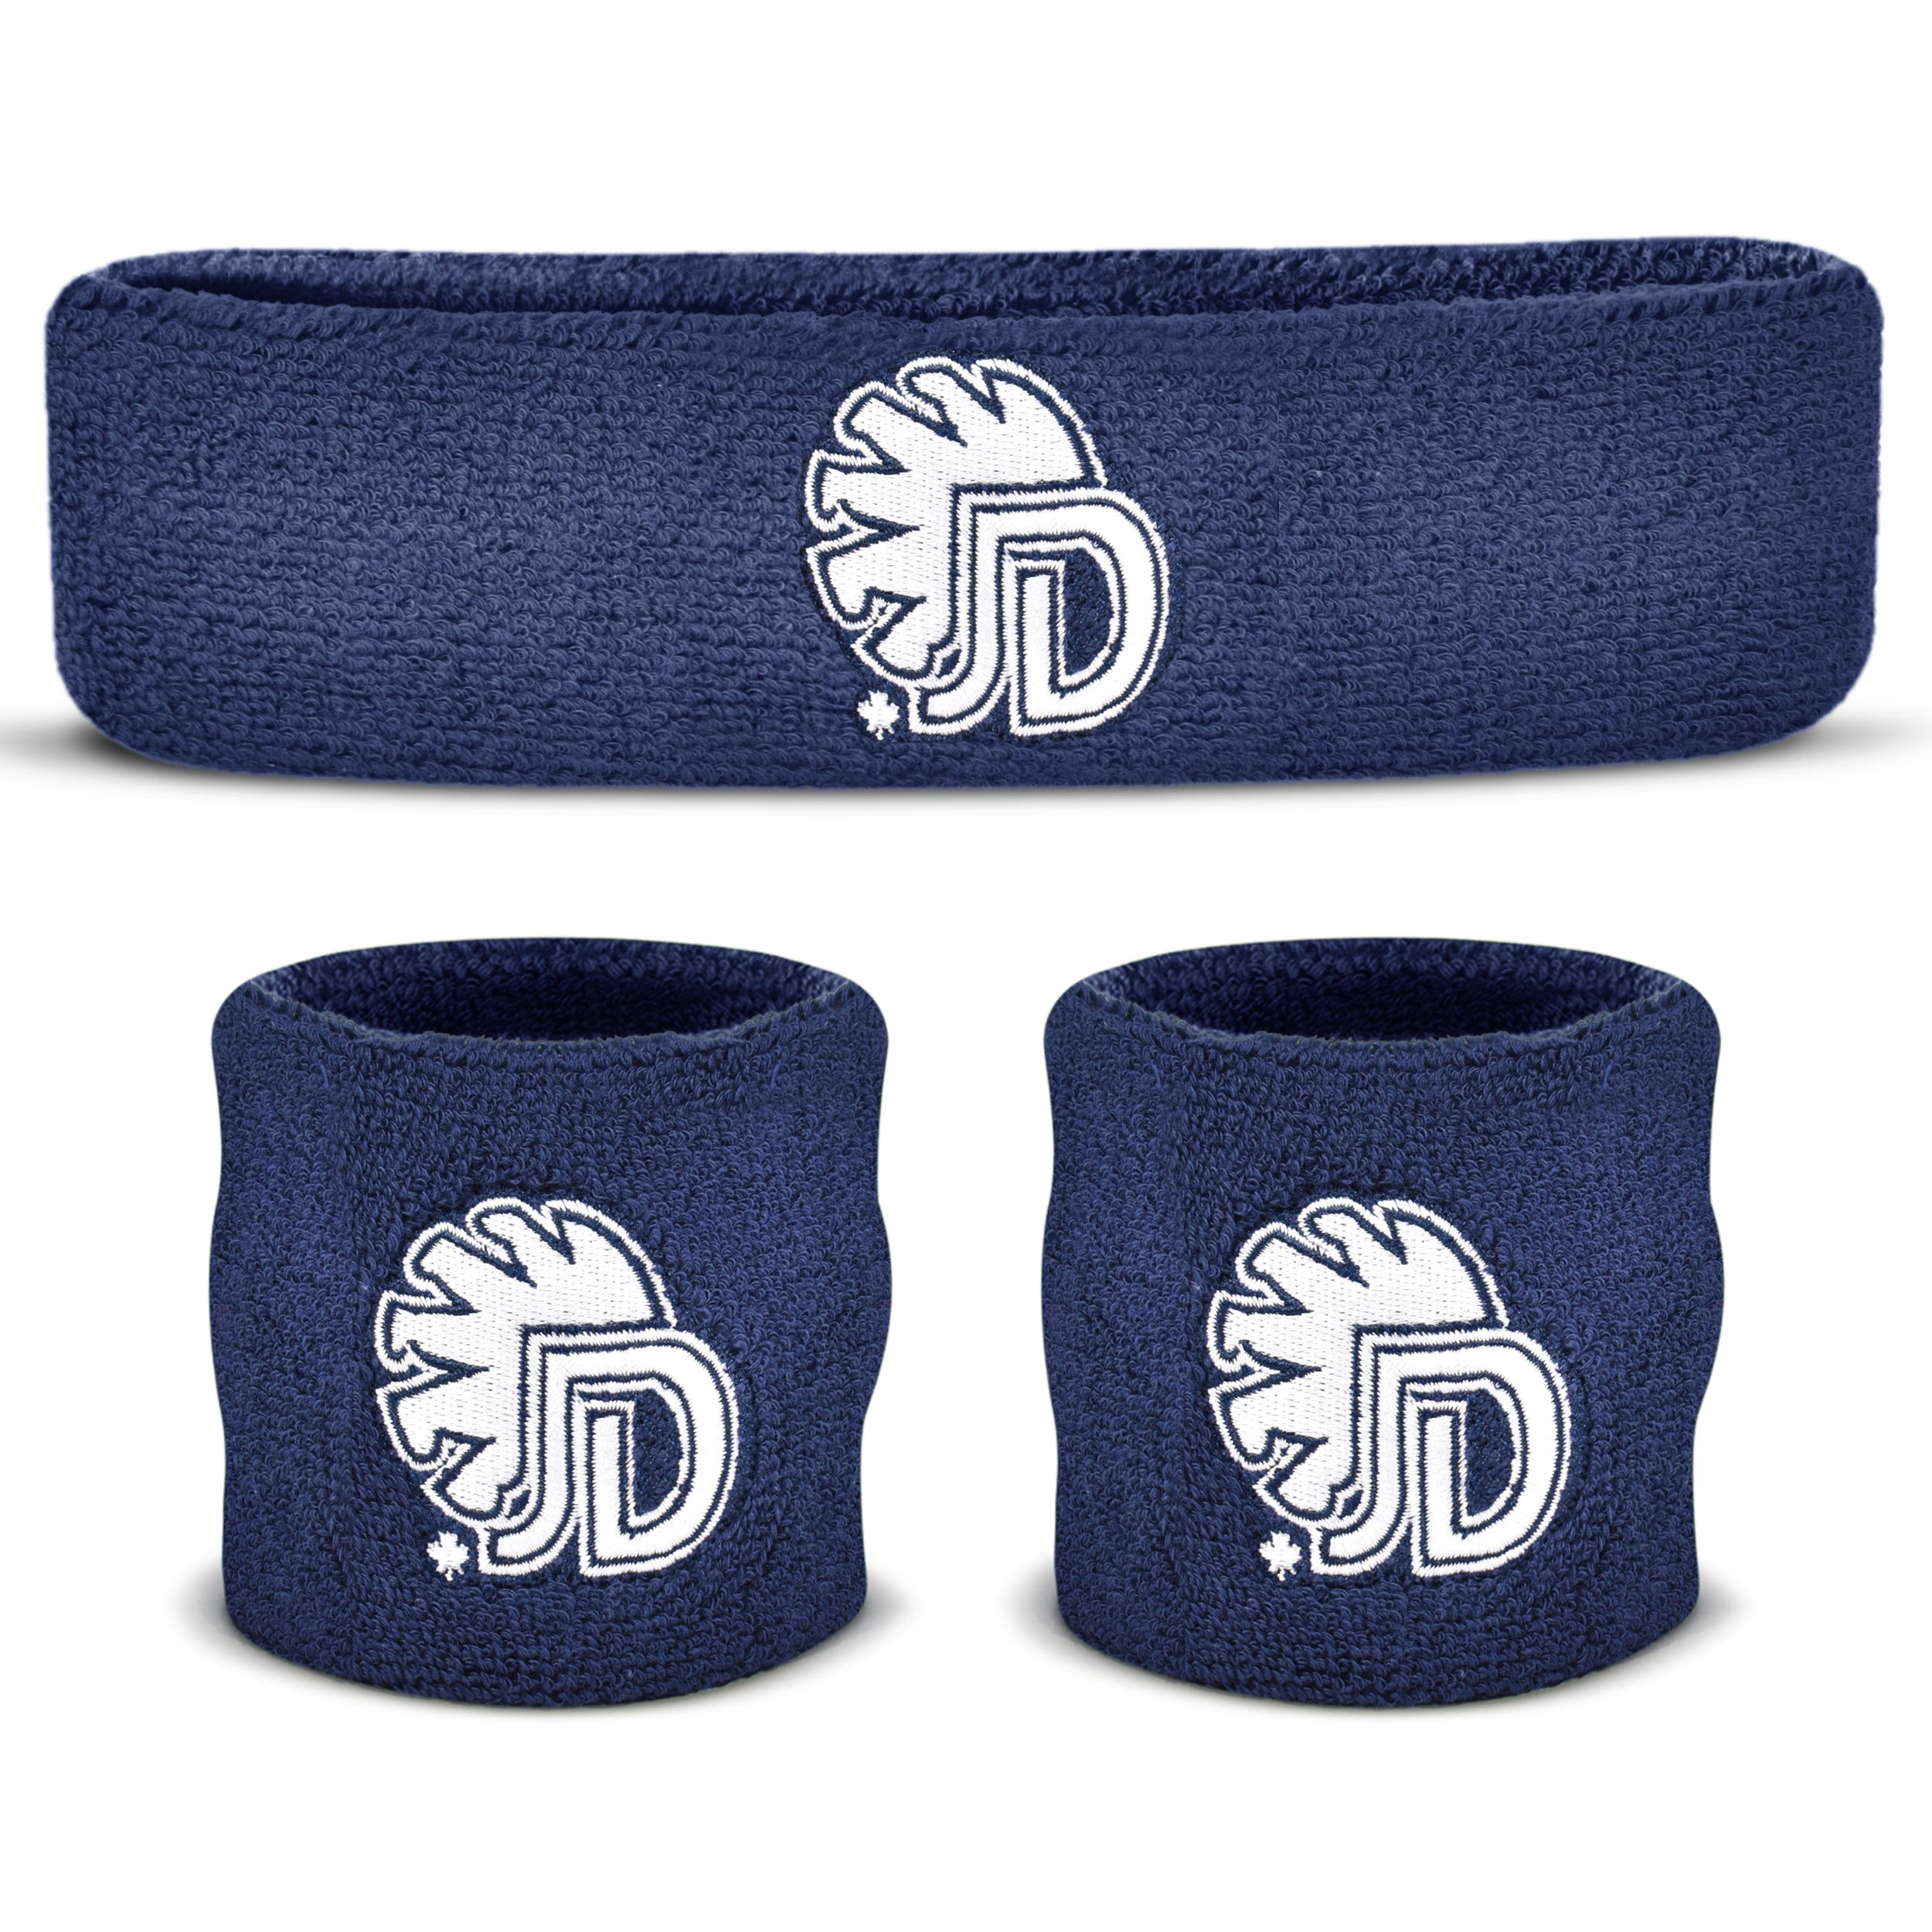 Custom Sweatband Set (1 Headband and 2 Wristbands)